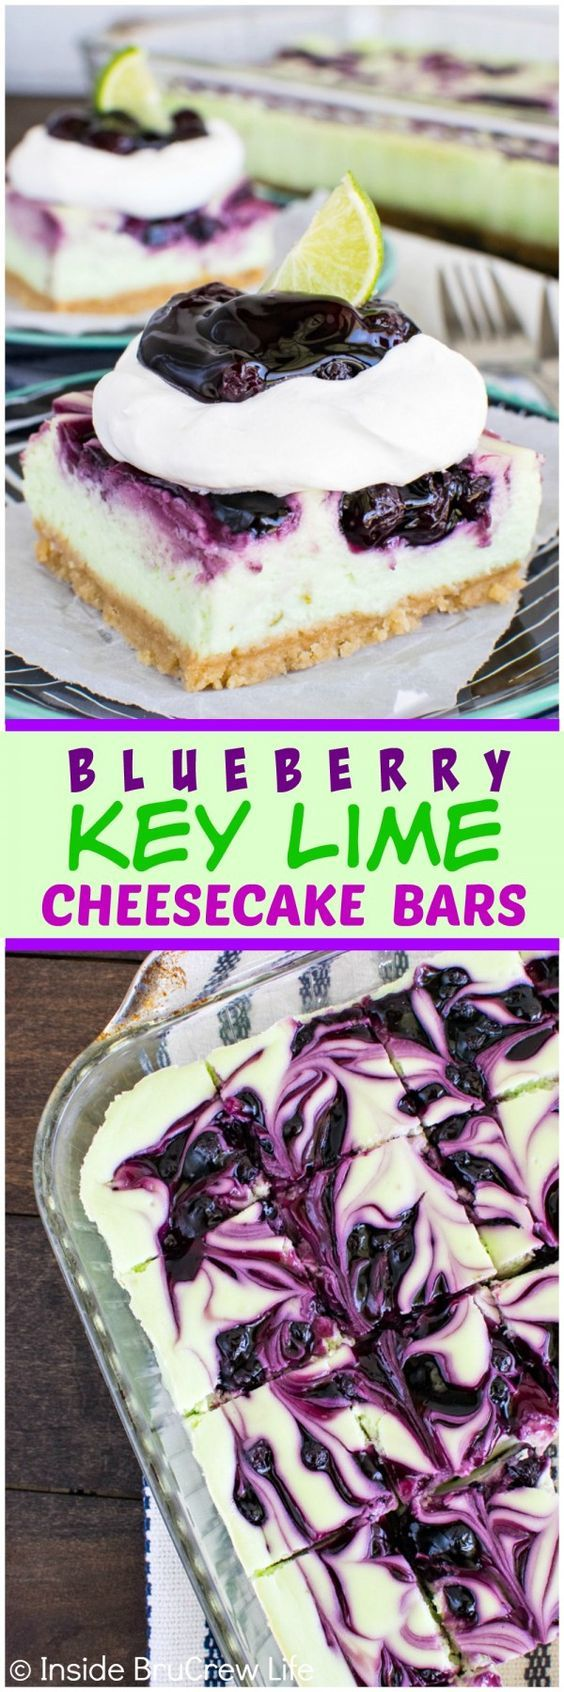 Blueberry Key Lime Cheesecake Bars - swirls of pie filling make these ...